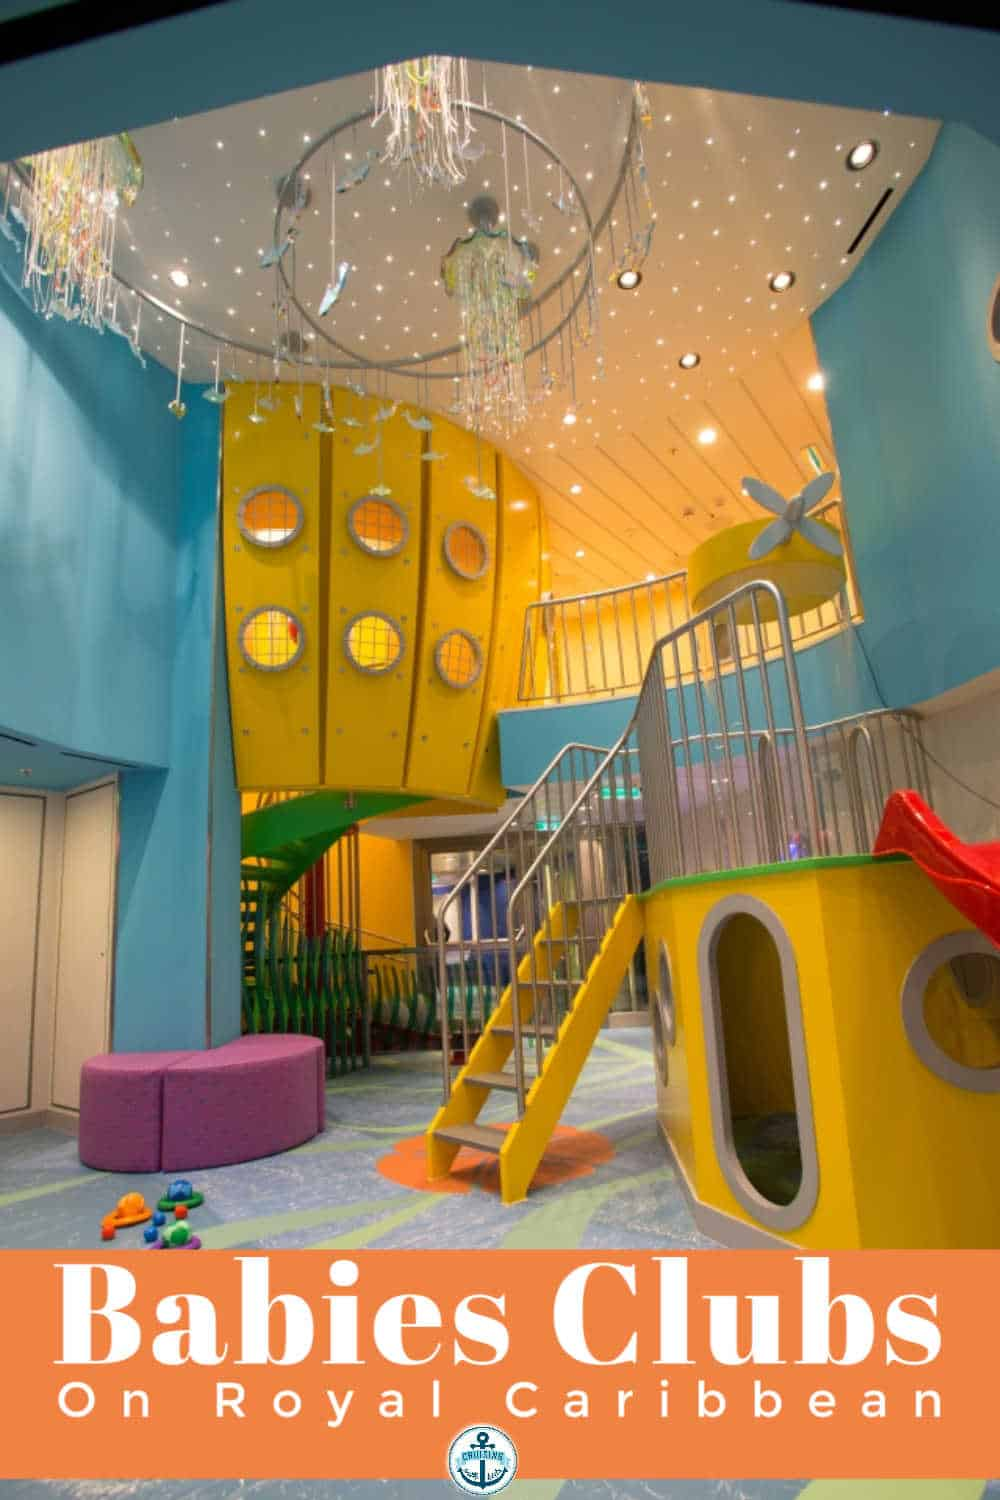 The ultimate guide to cruising babies clubs on Royal Caribbean including stay and plays and bookable nurseries